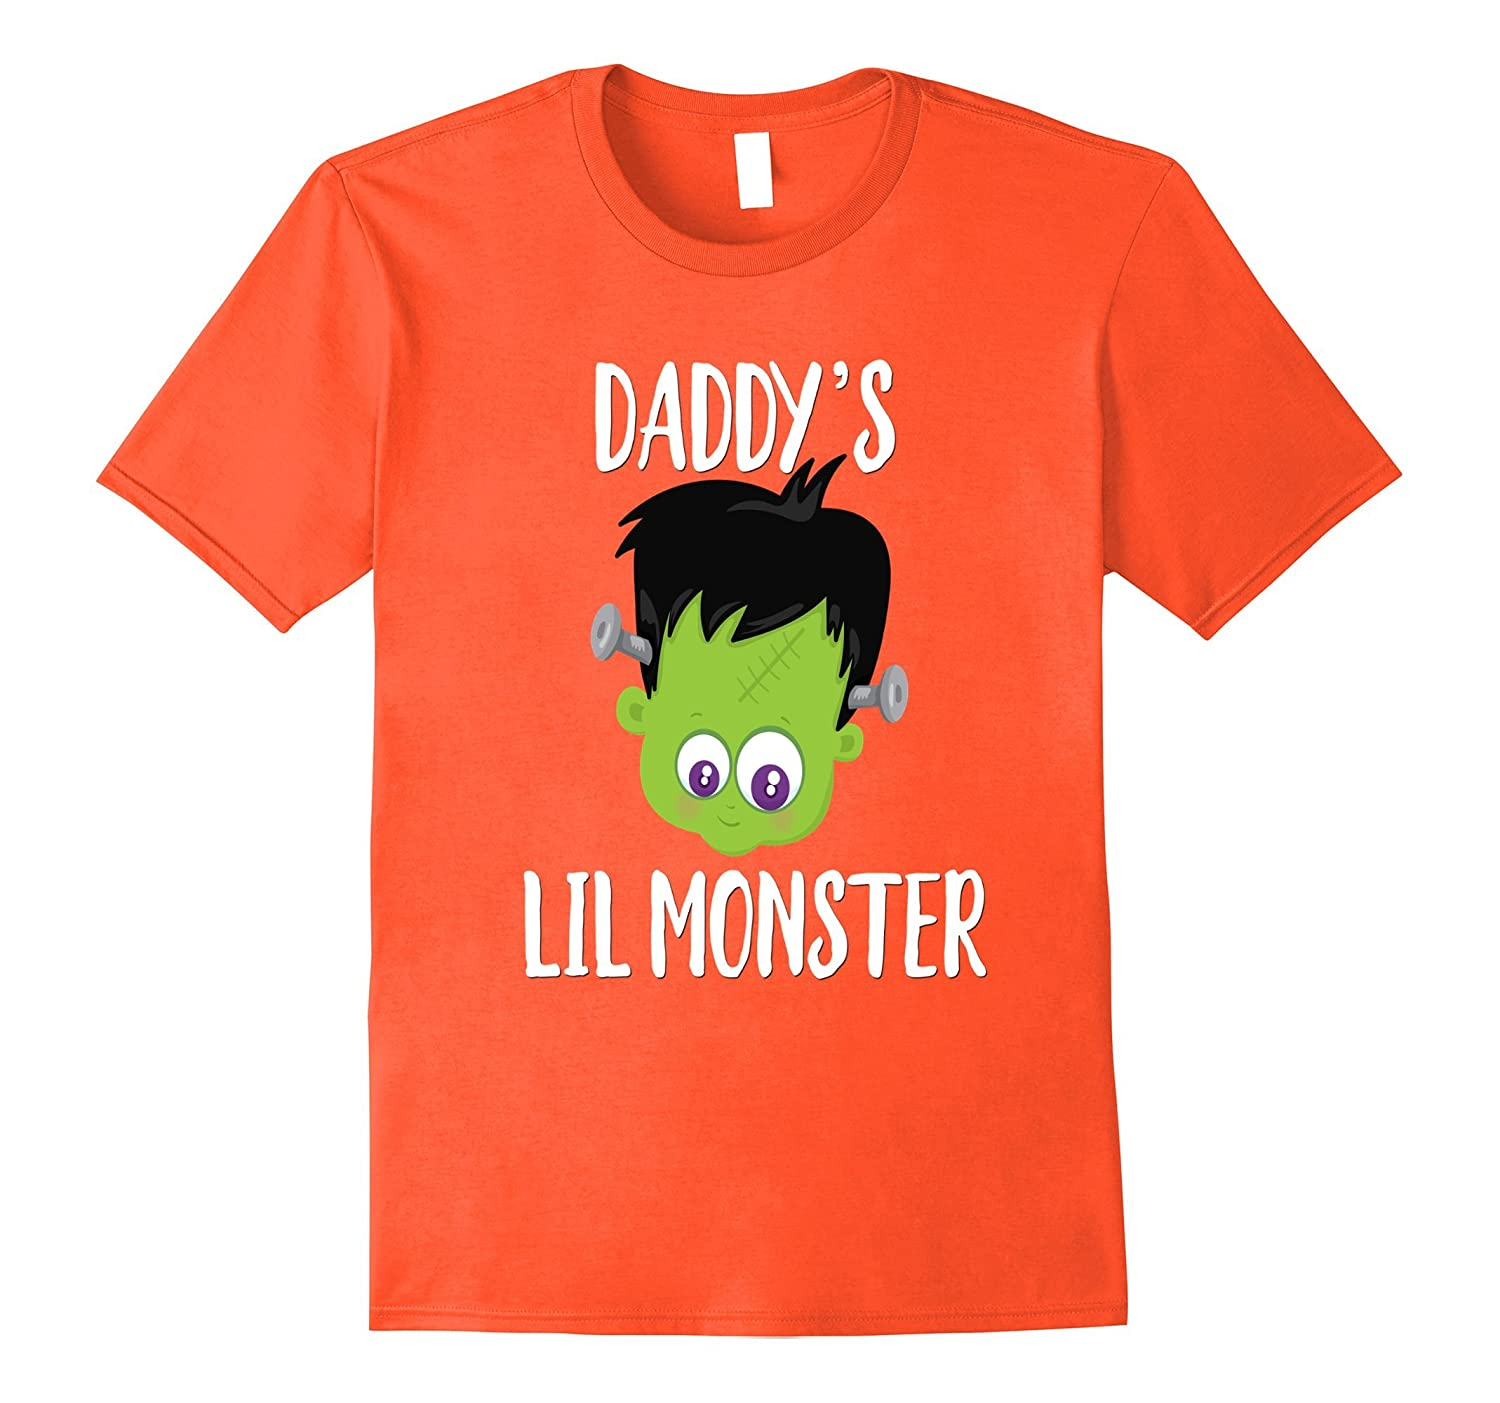 b19bf394 Daddys Little Monster Halloween Shirt Green Cute Kids-4LVS - 4loveshirt